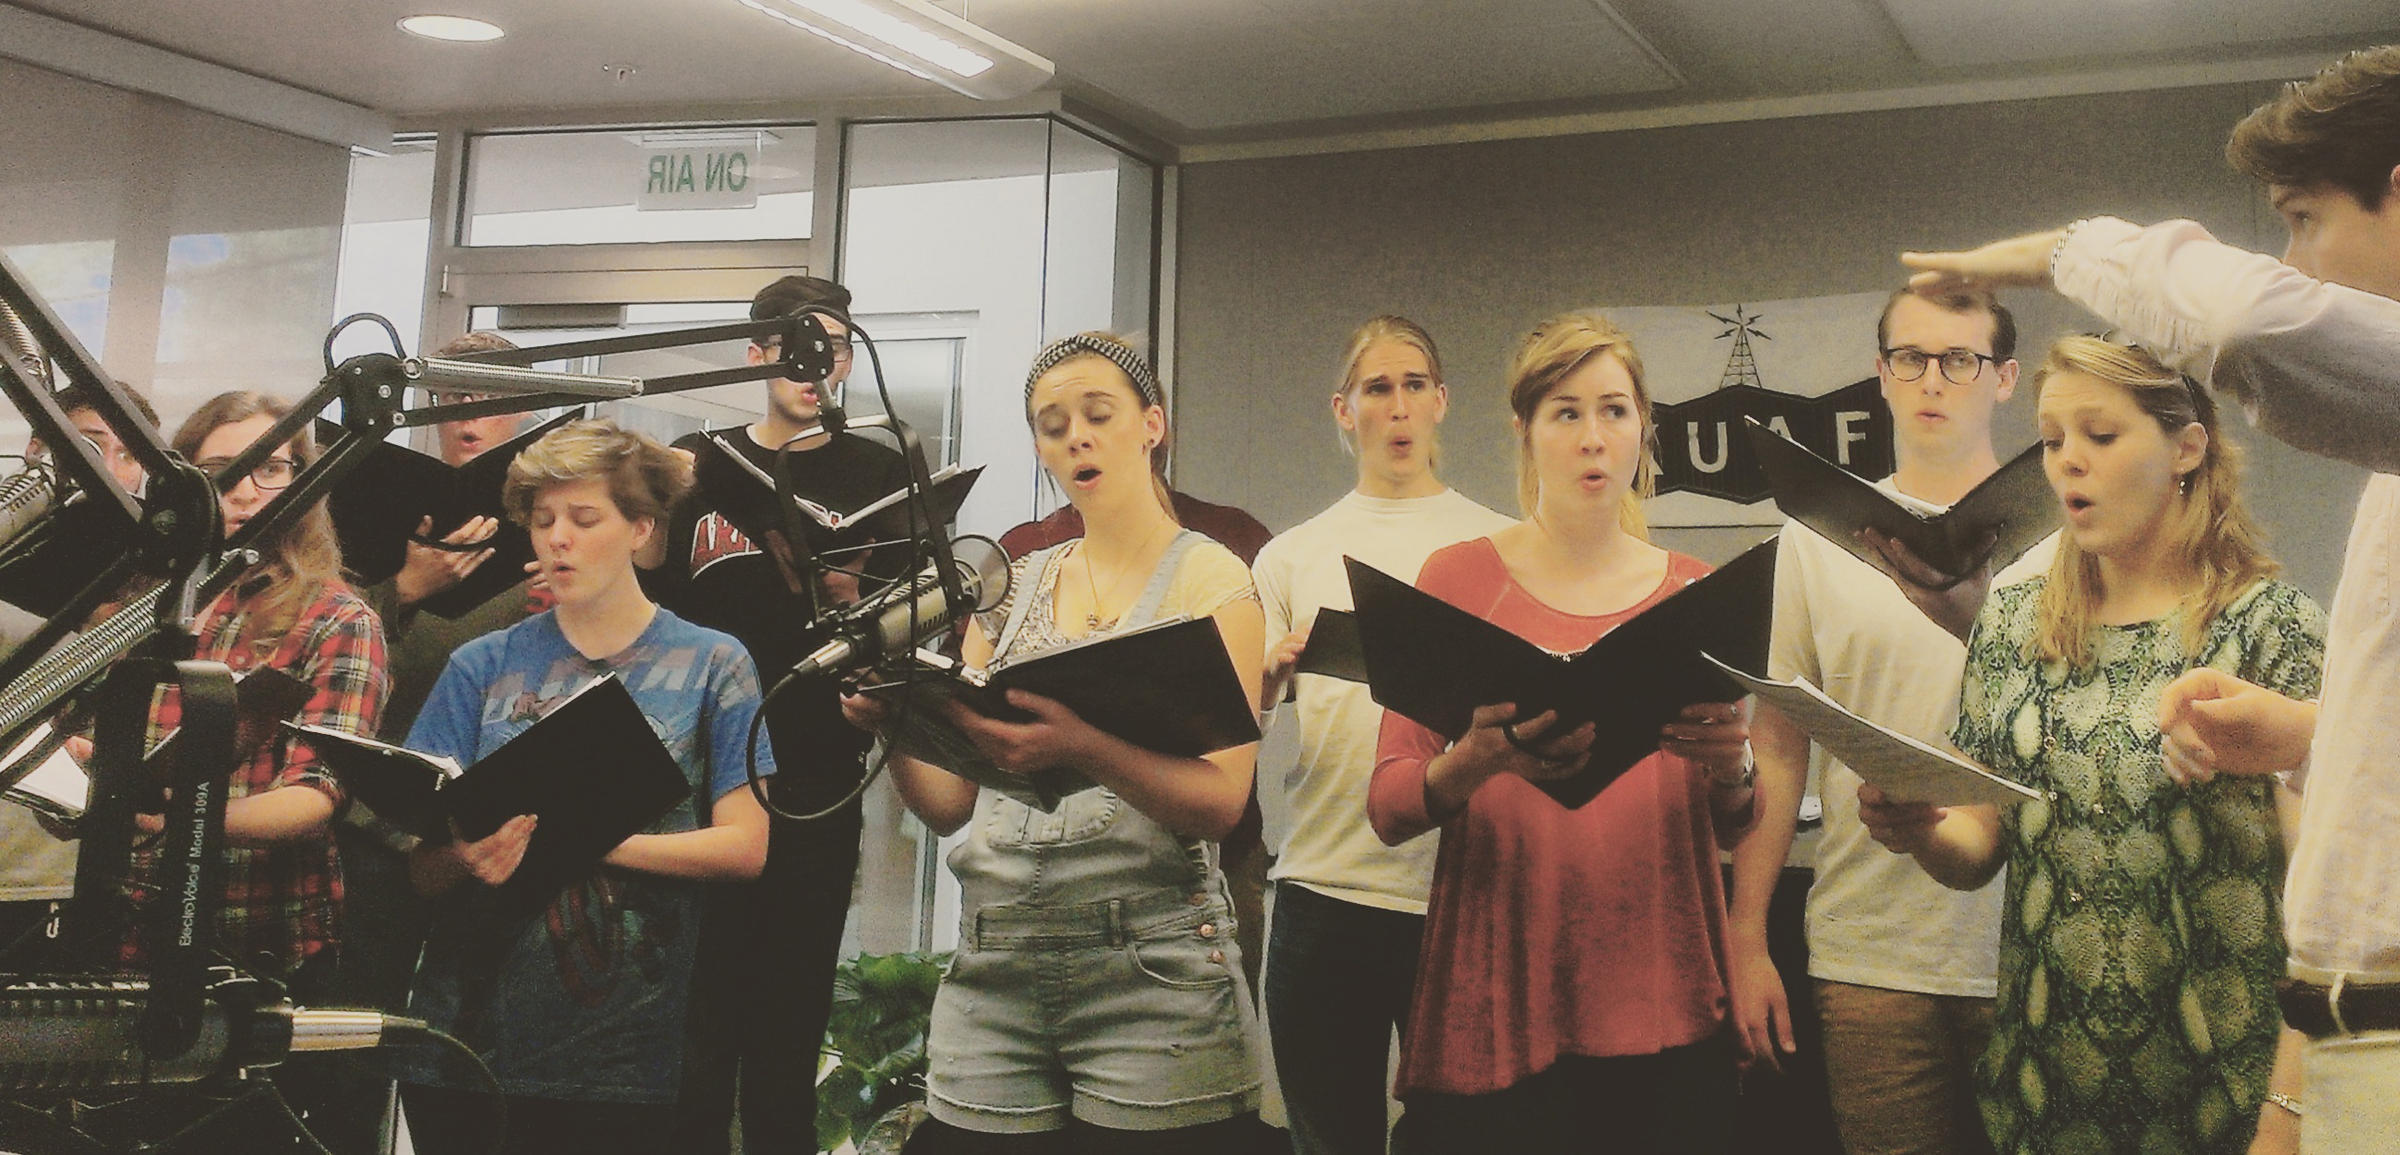 From Early Music to the 21st Century: Choral Group Schola